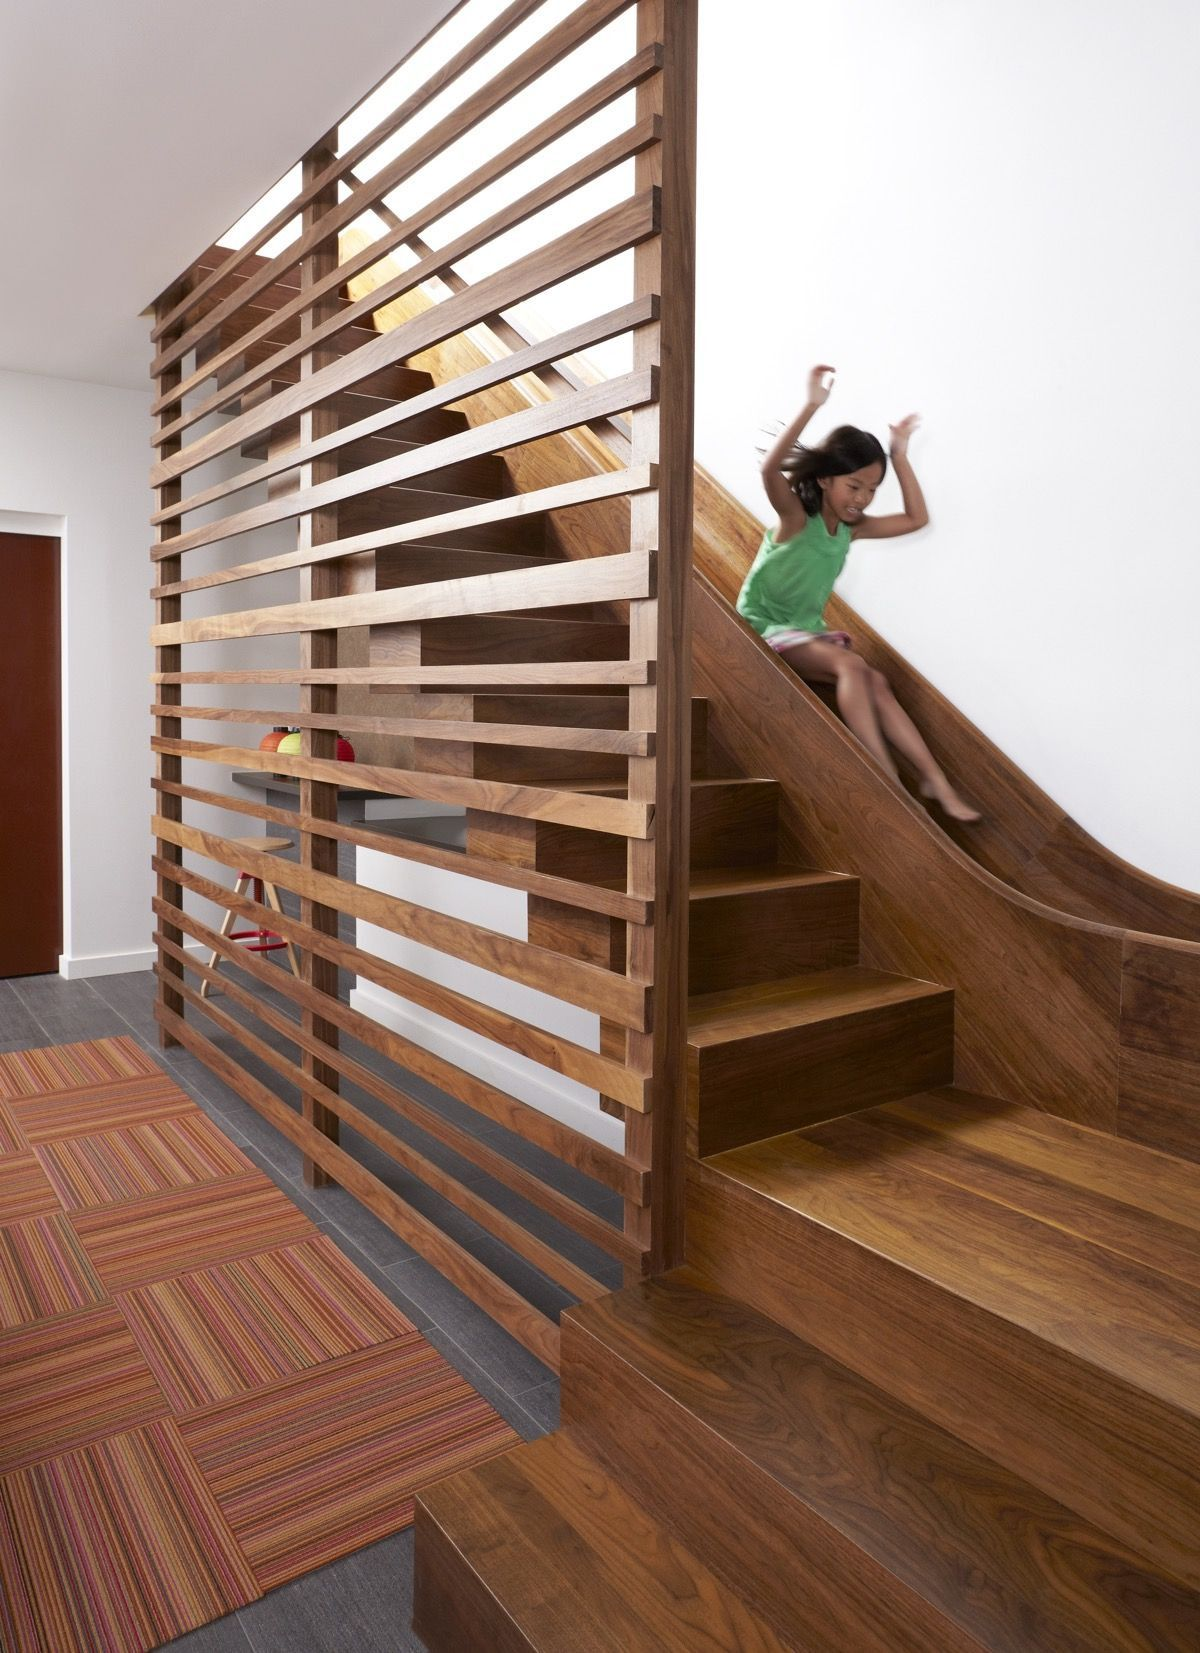 Spiral Staircase Slide attached 2021 in 2020   Indoor ...